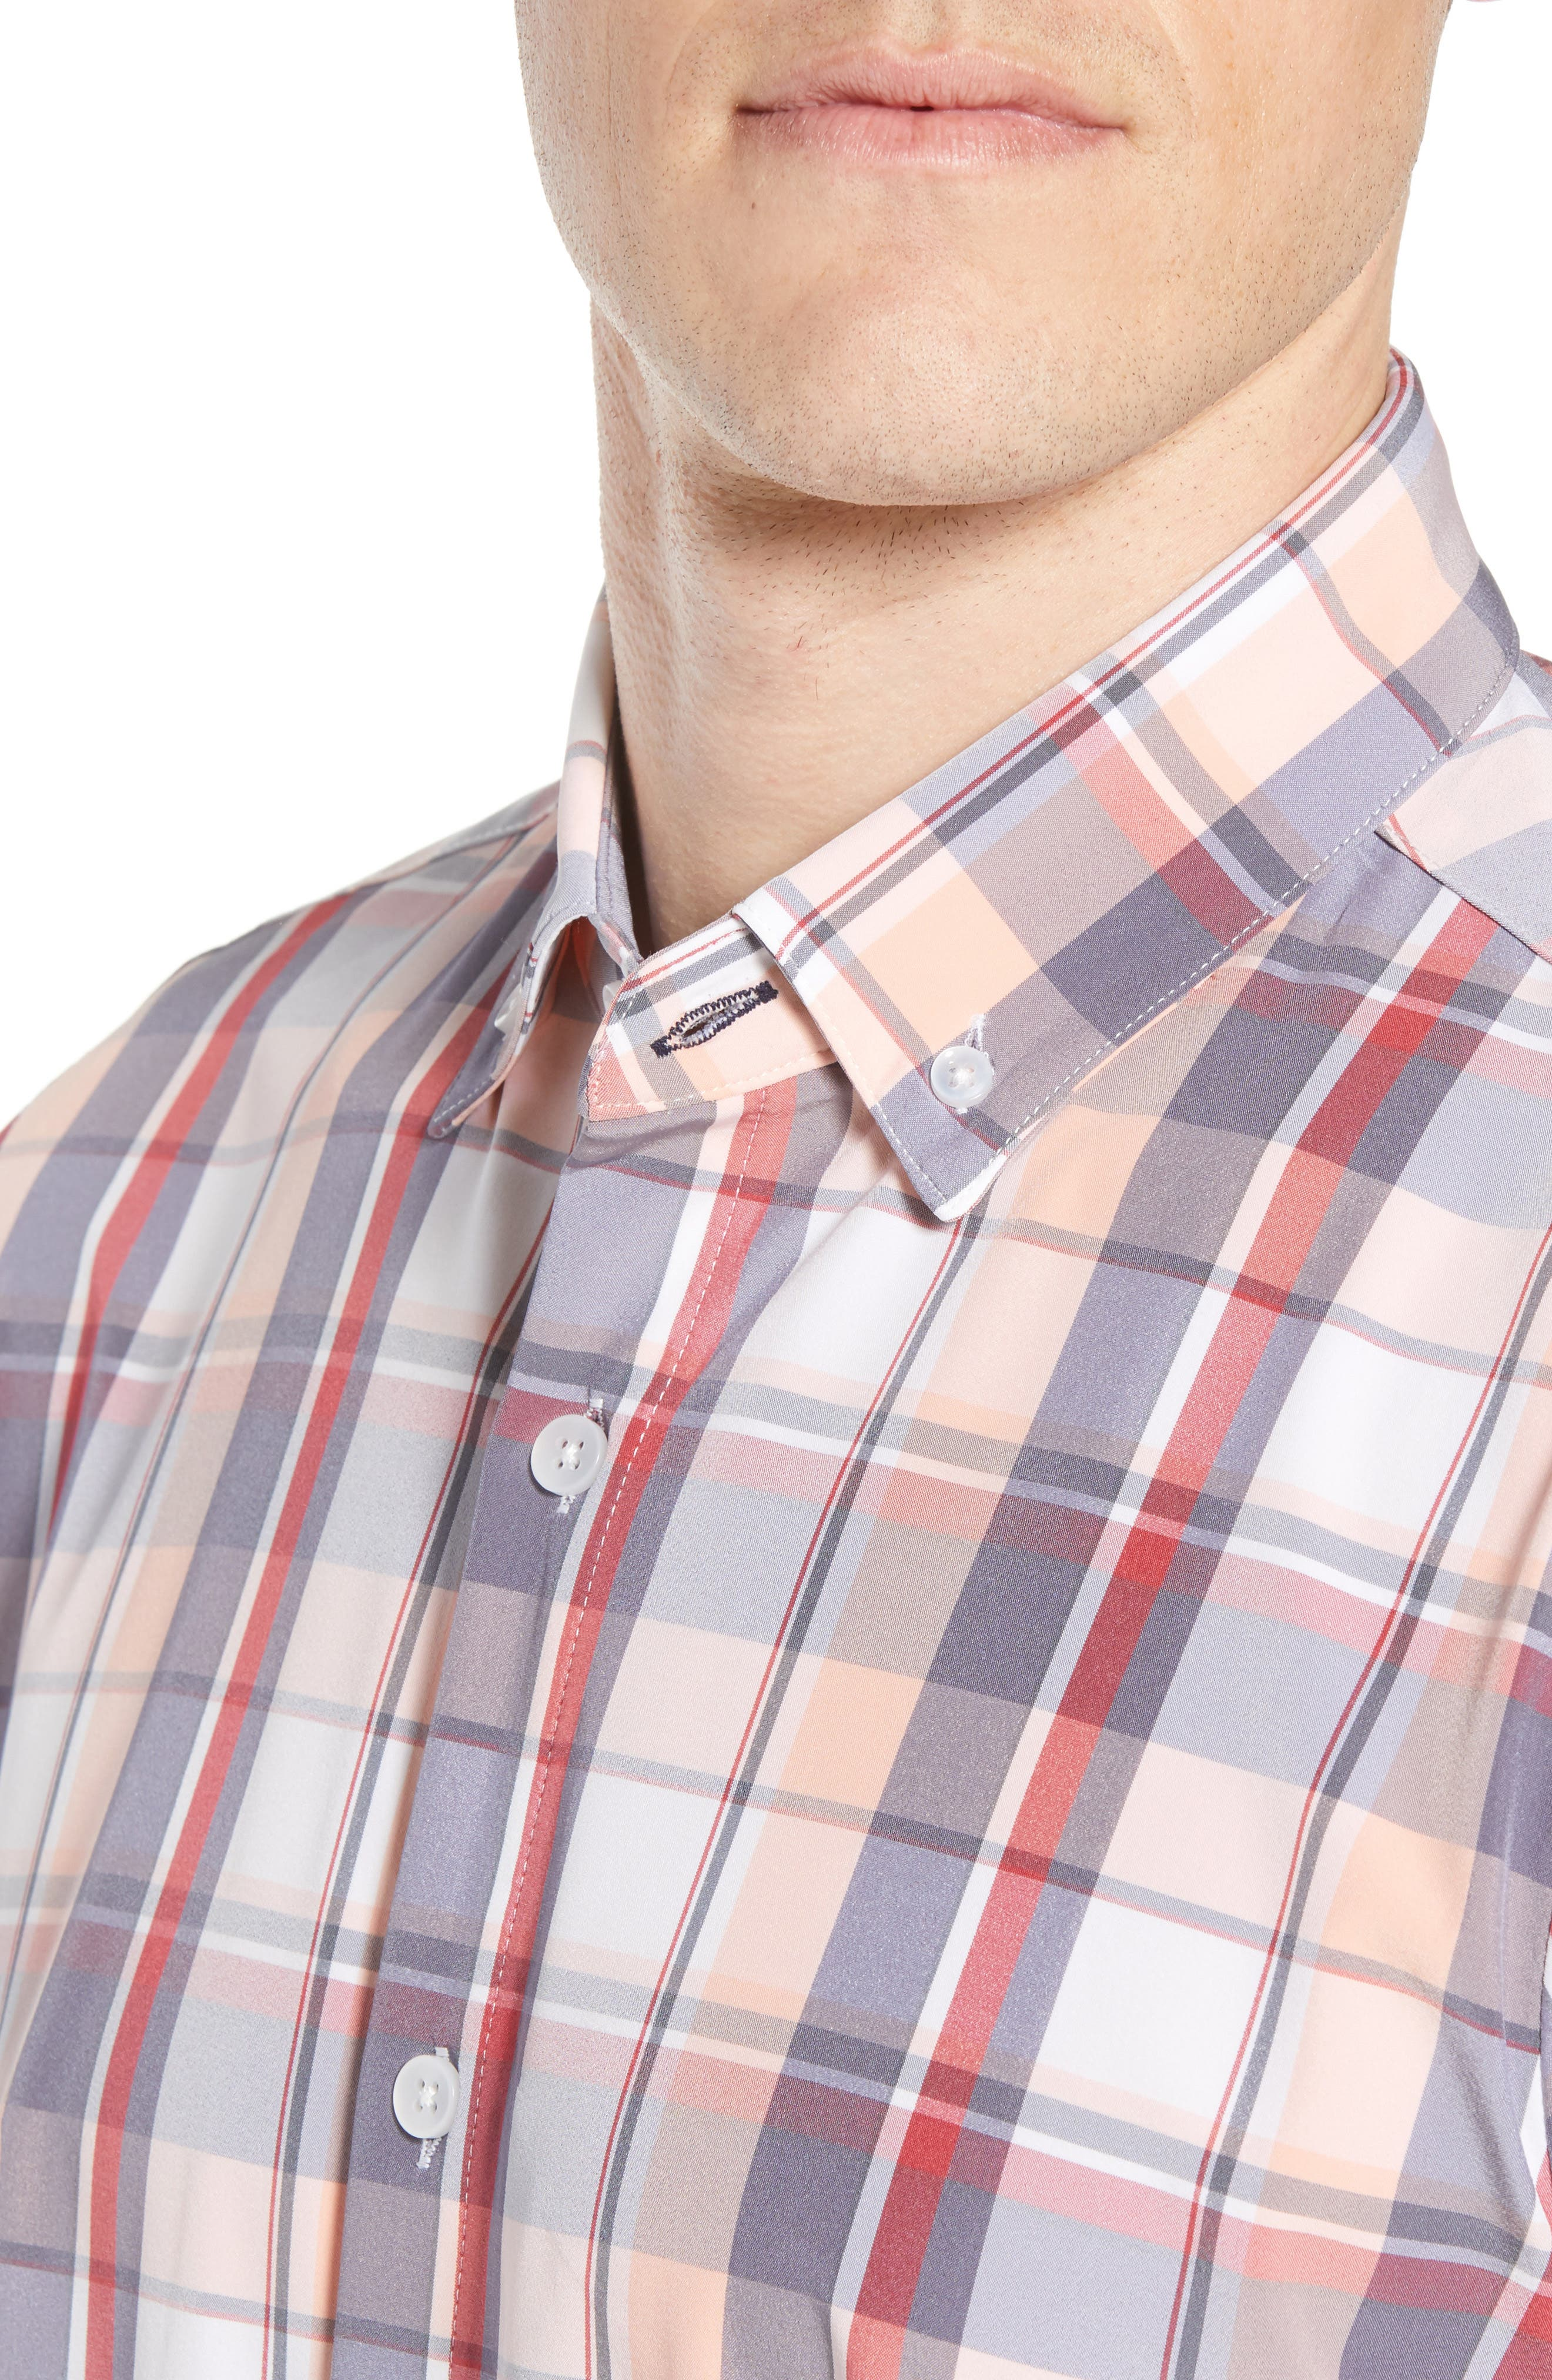 Brazos Slim Fit Madras Plaid Performance Sport Shirt,                             Alternate thumbnail 2, color,                             Peach